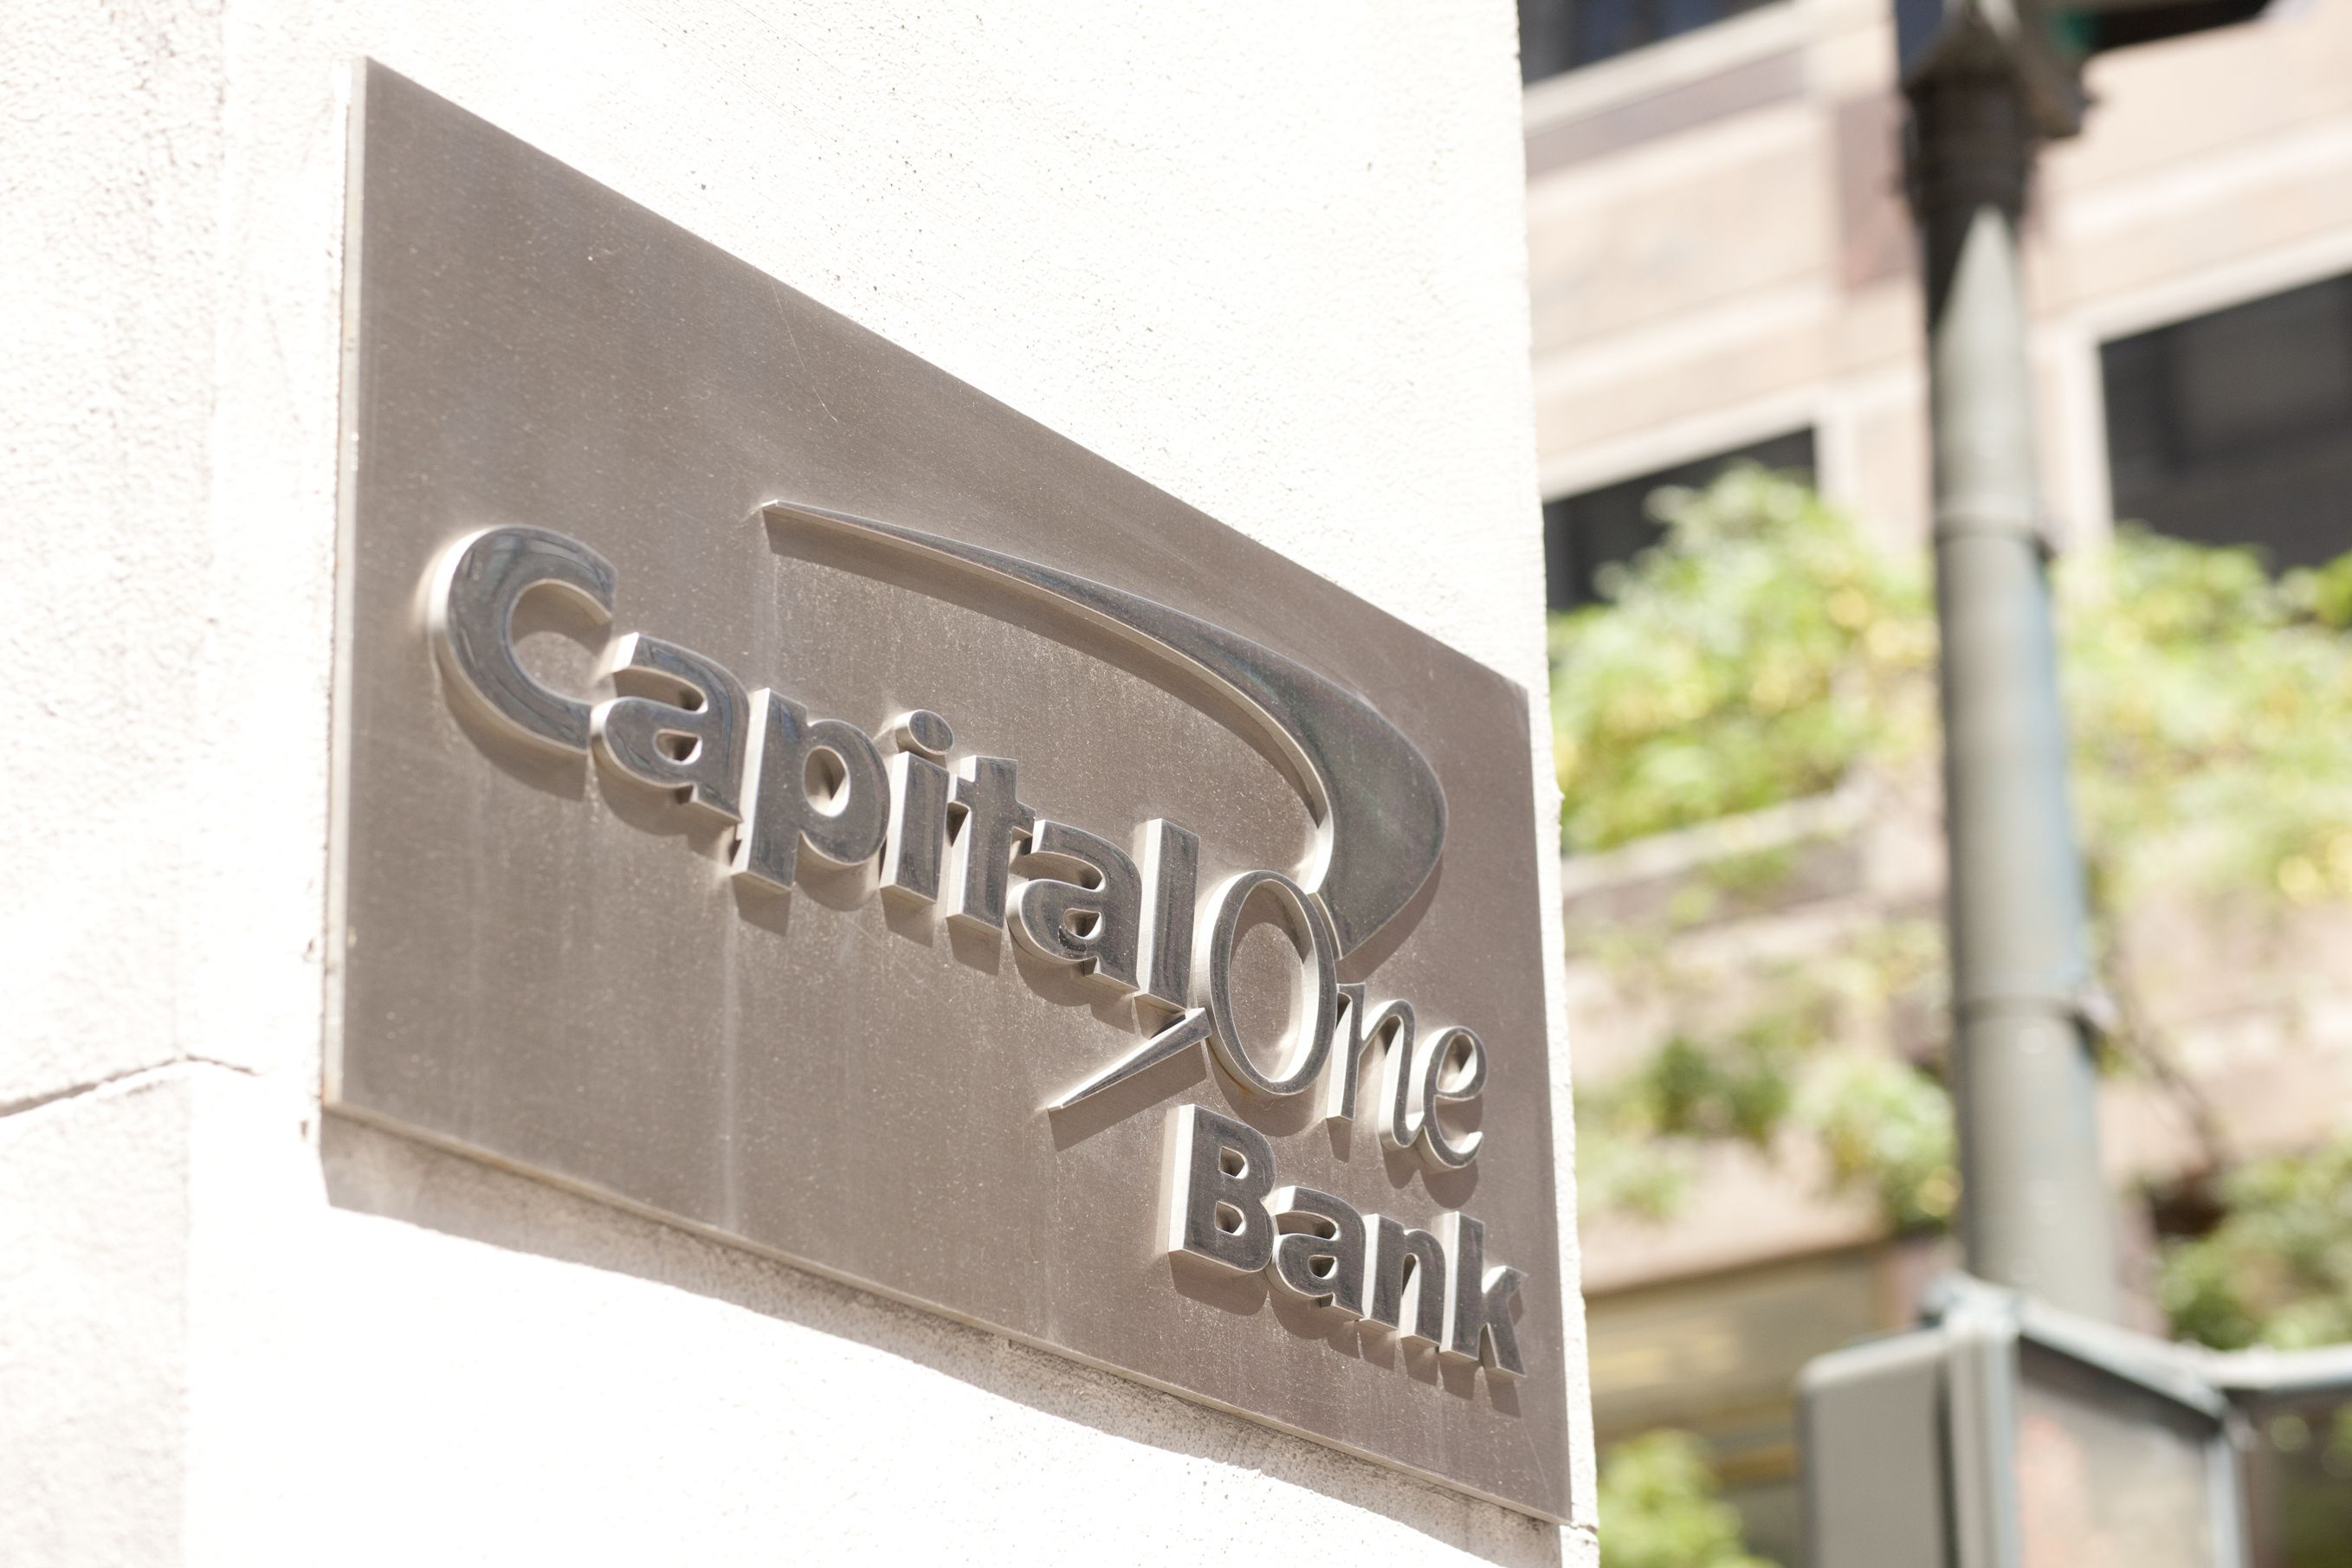 Capital One credit card details, postcode and date of birth.